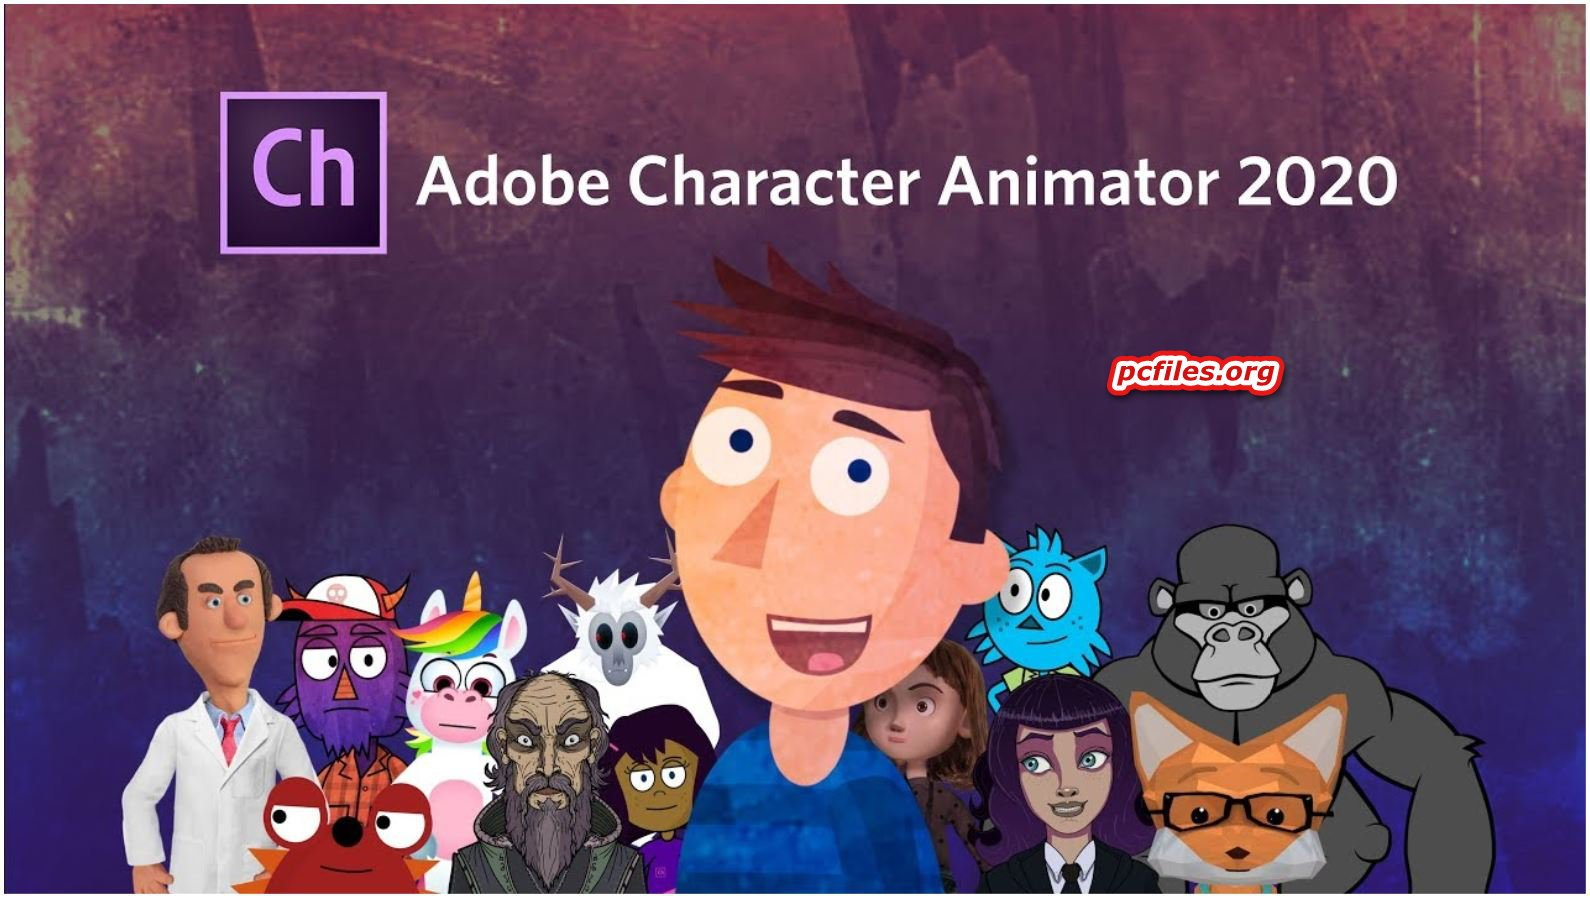 Adobe Character Animator, Download Adobe Animation Software for Windows